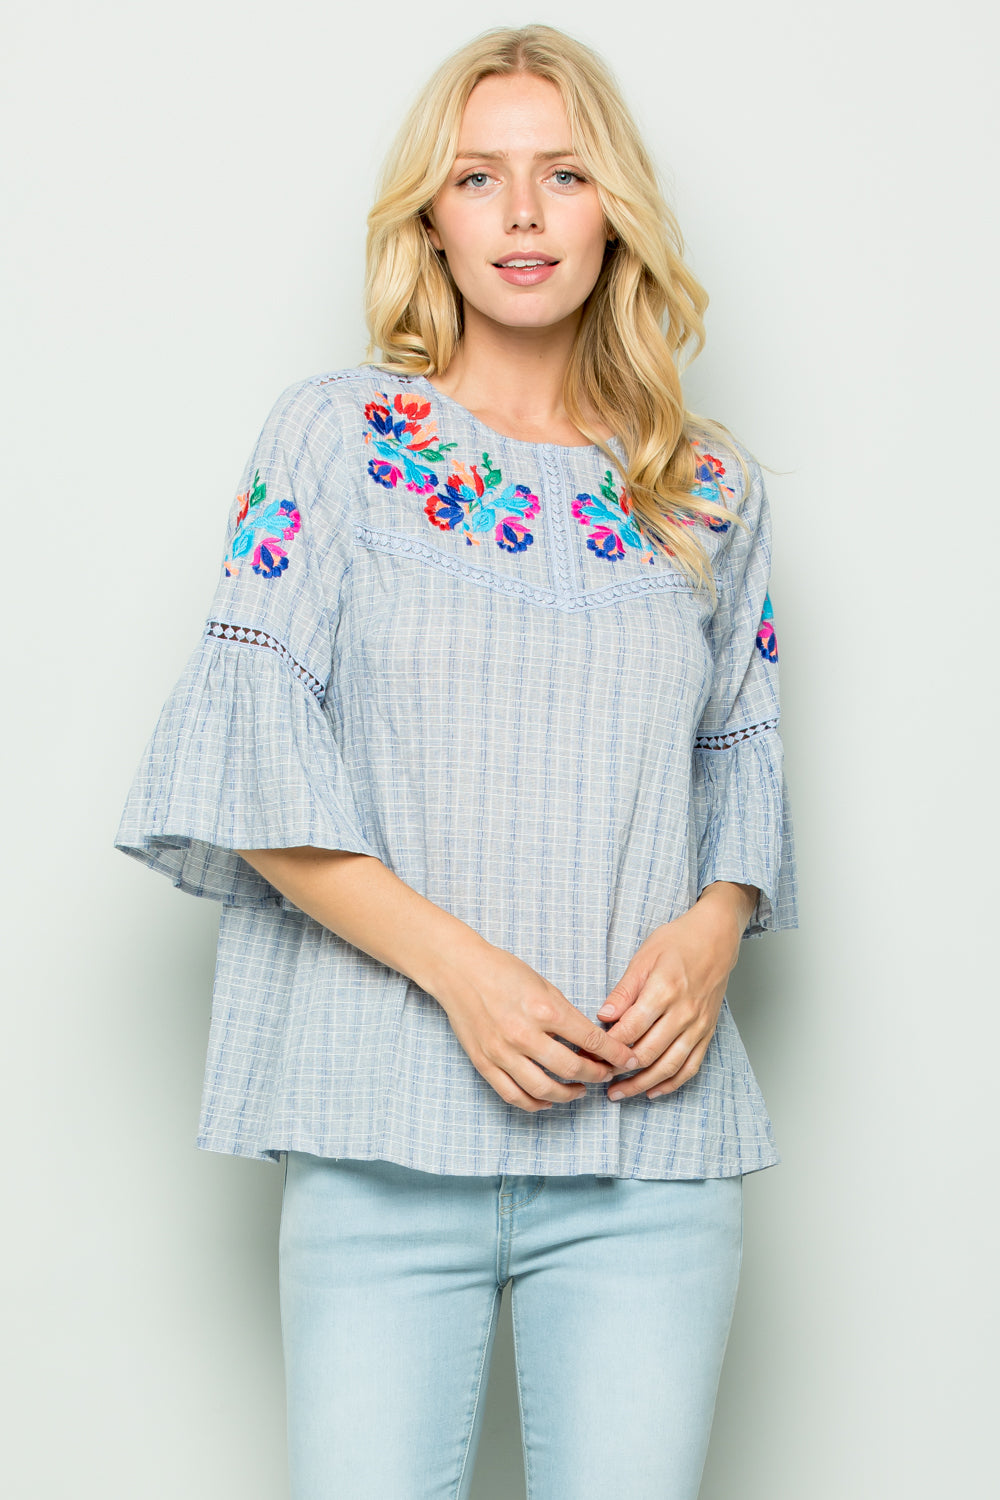 T2728 Embroidery Trimed Top - Blue